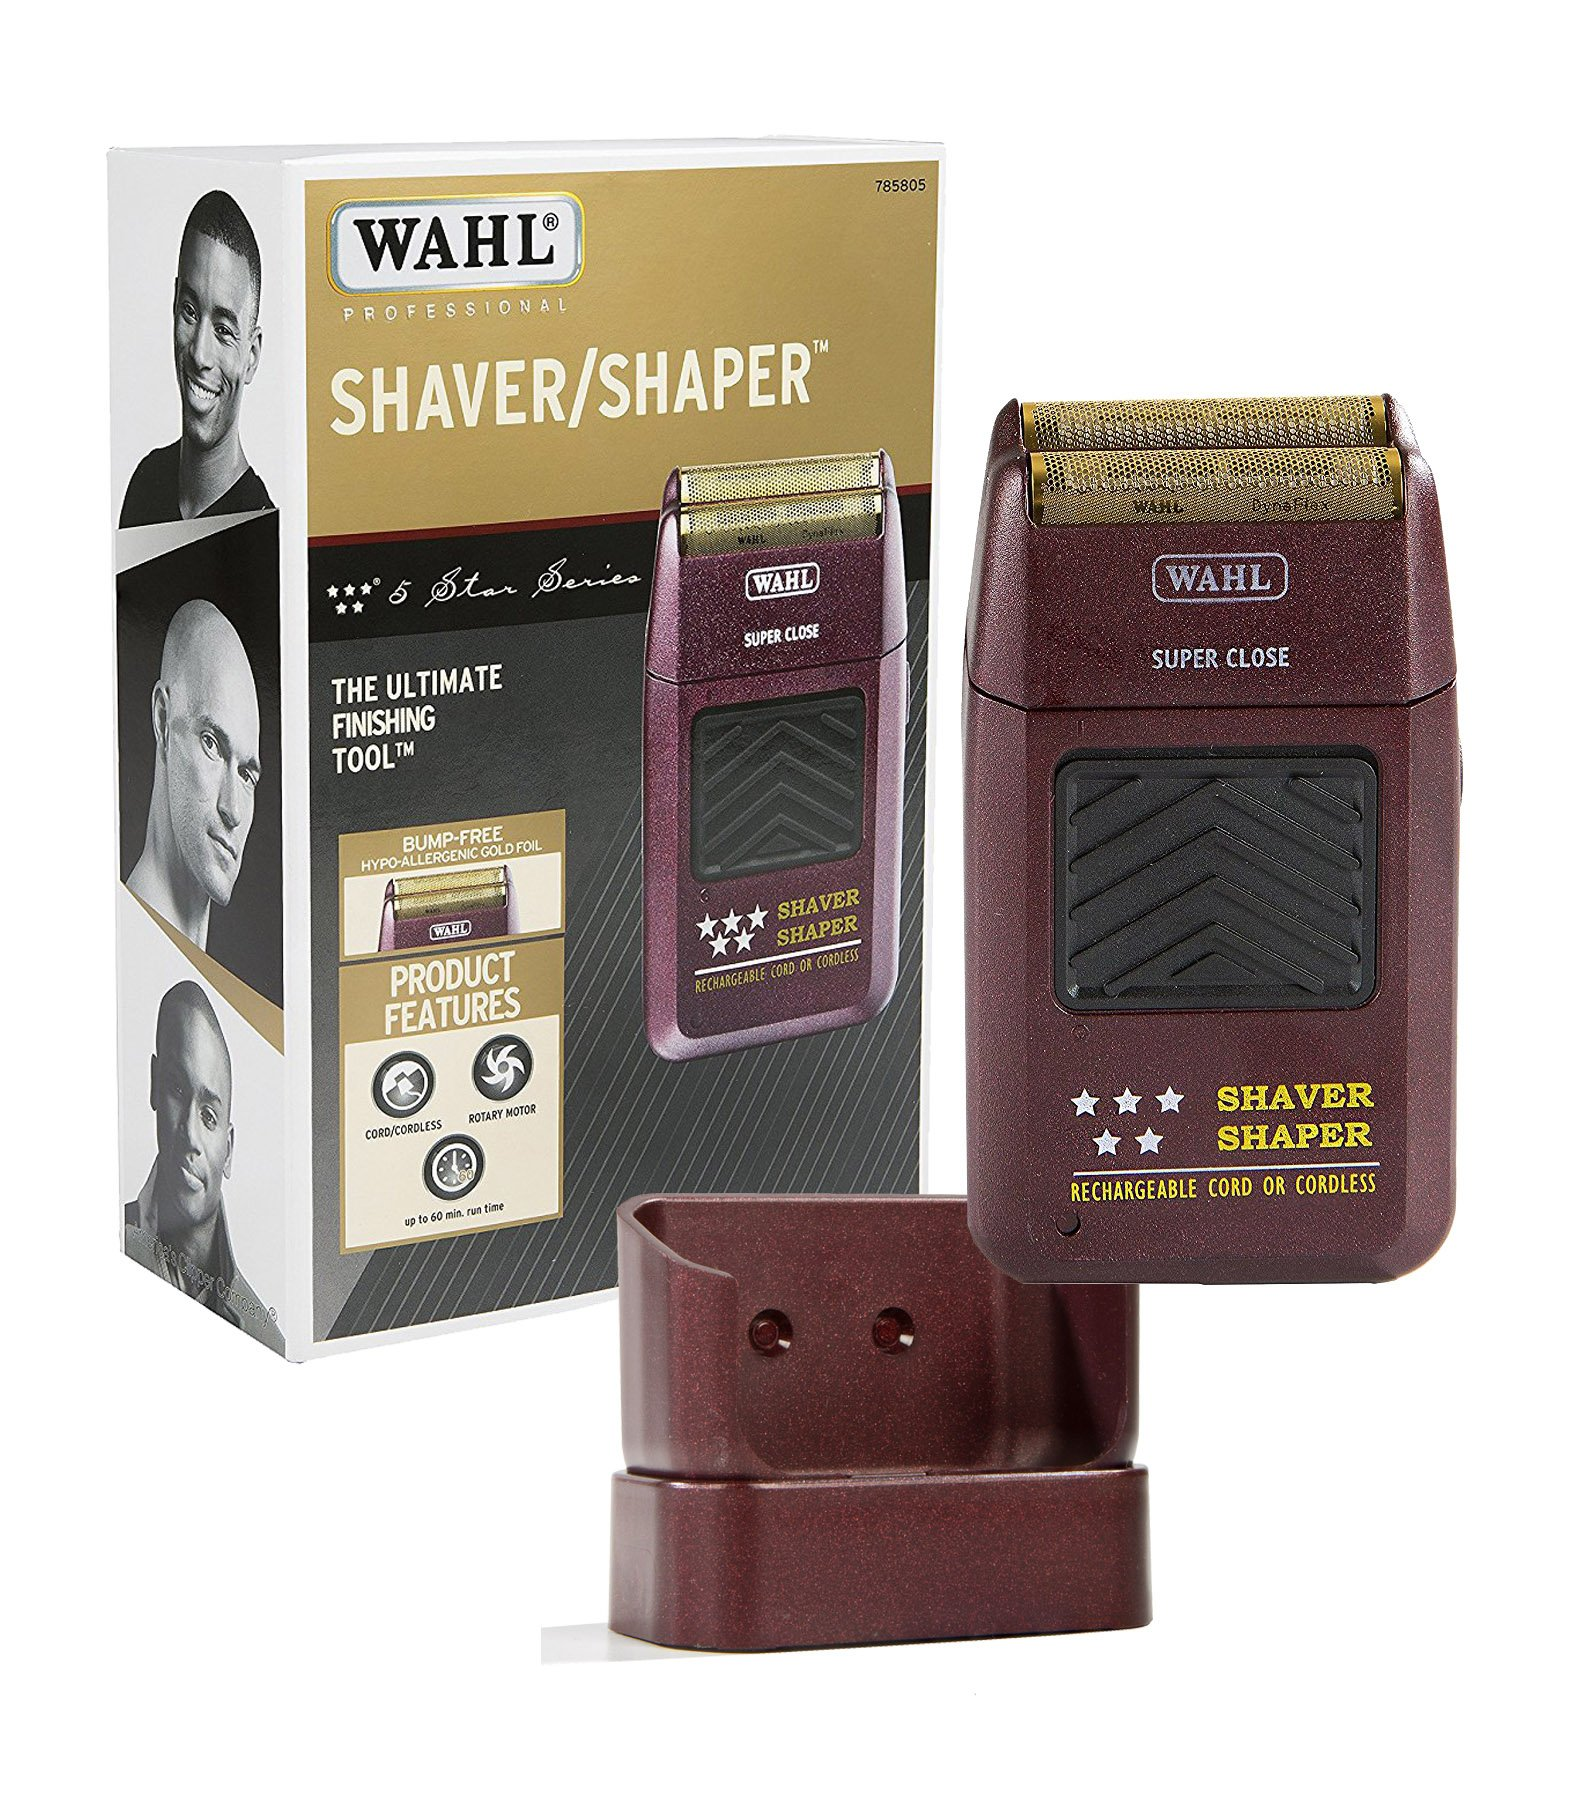 Wahl Professional 5-Star Series Rechargeable Shaver/Shaper #8061-100 with Charge Stand #7031-900 – Great for Barbers and Stylists